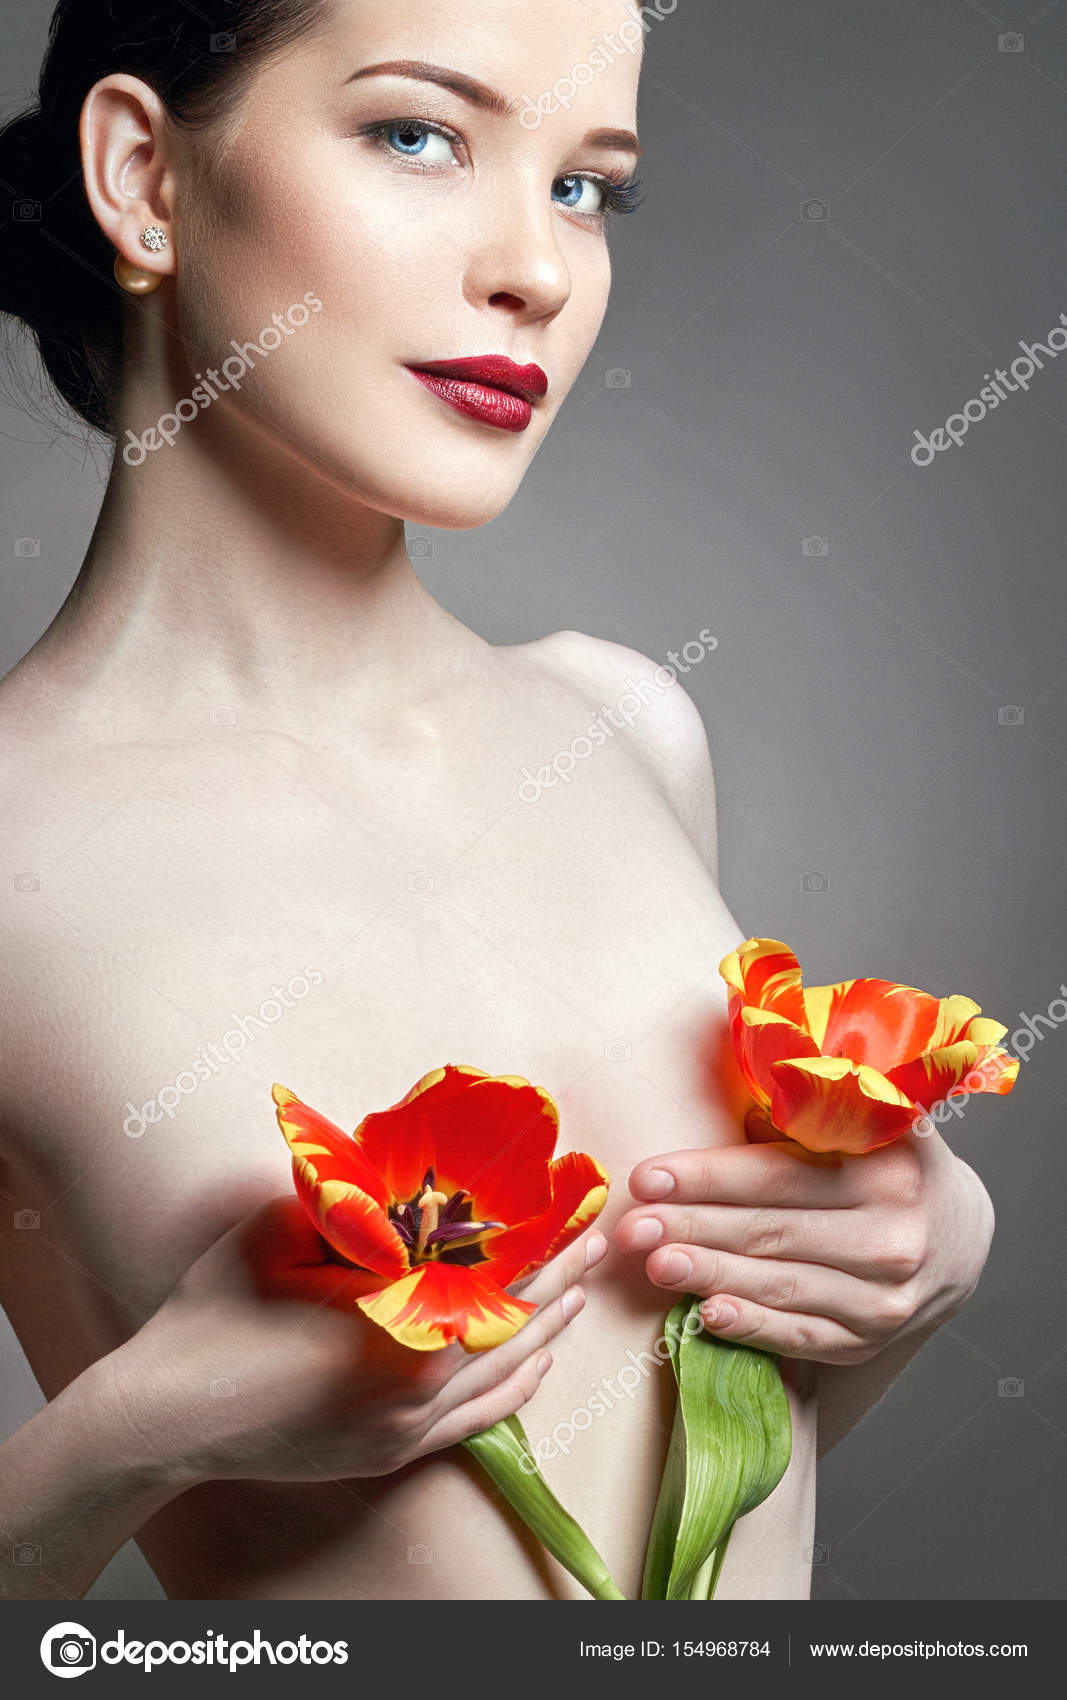 Share Nude female flower speaking